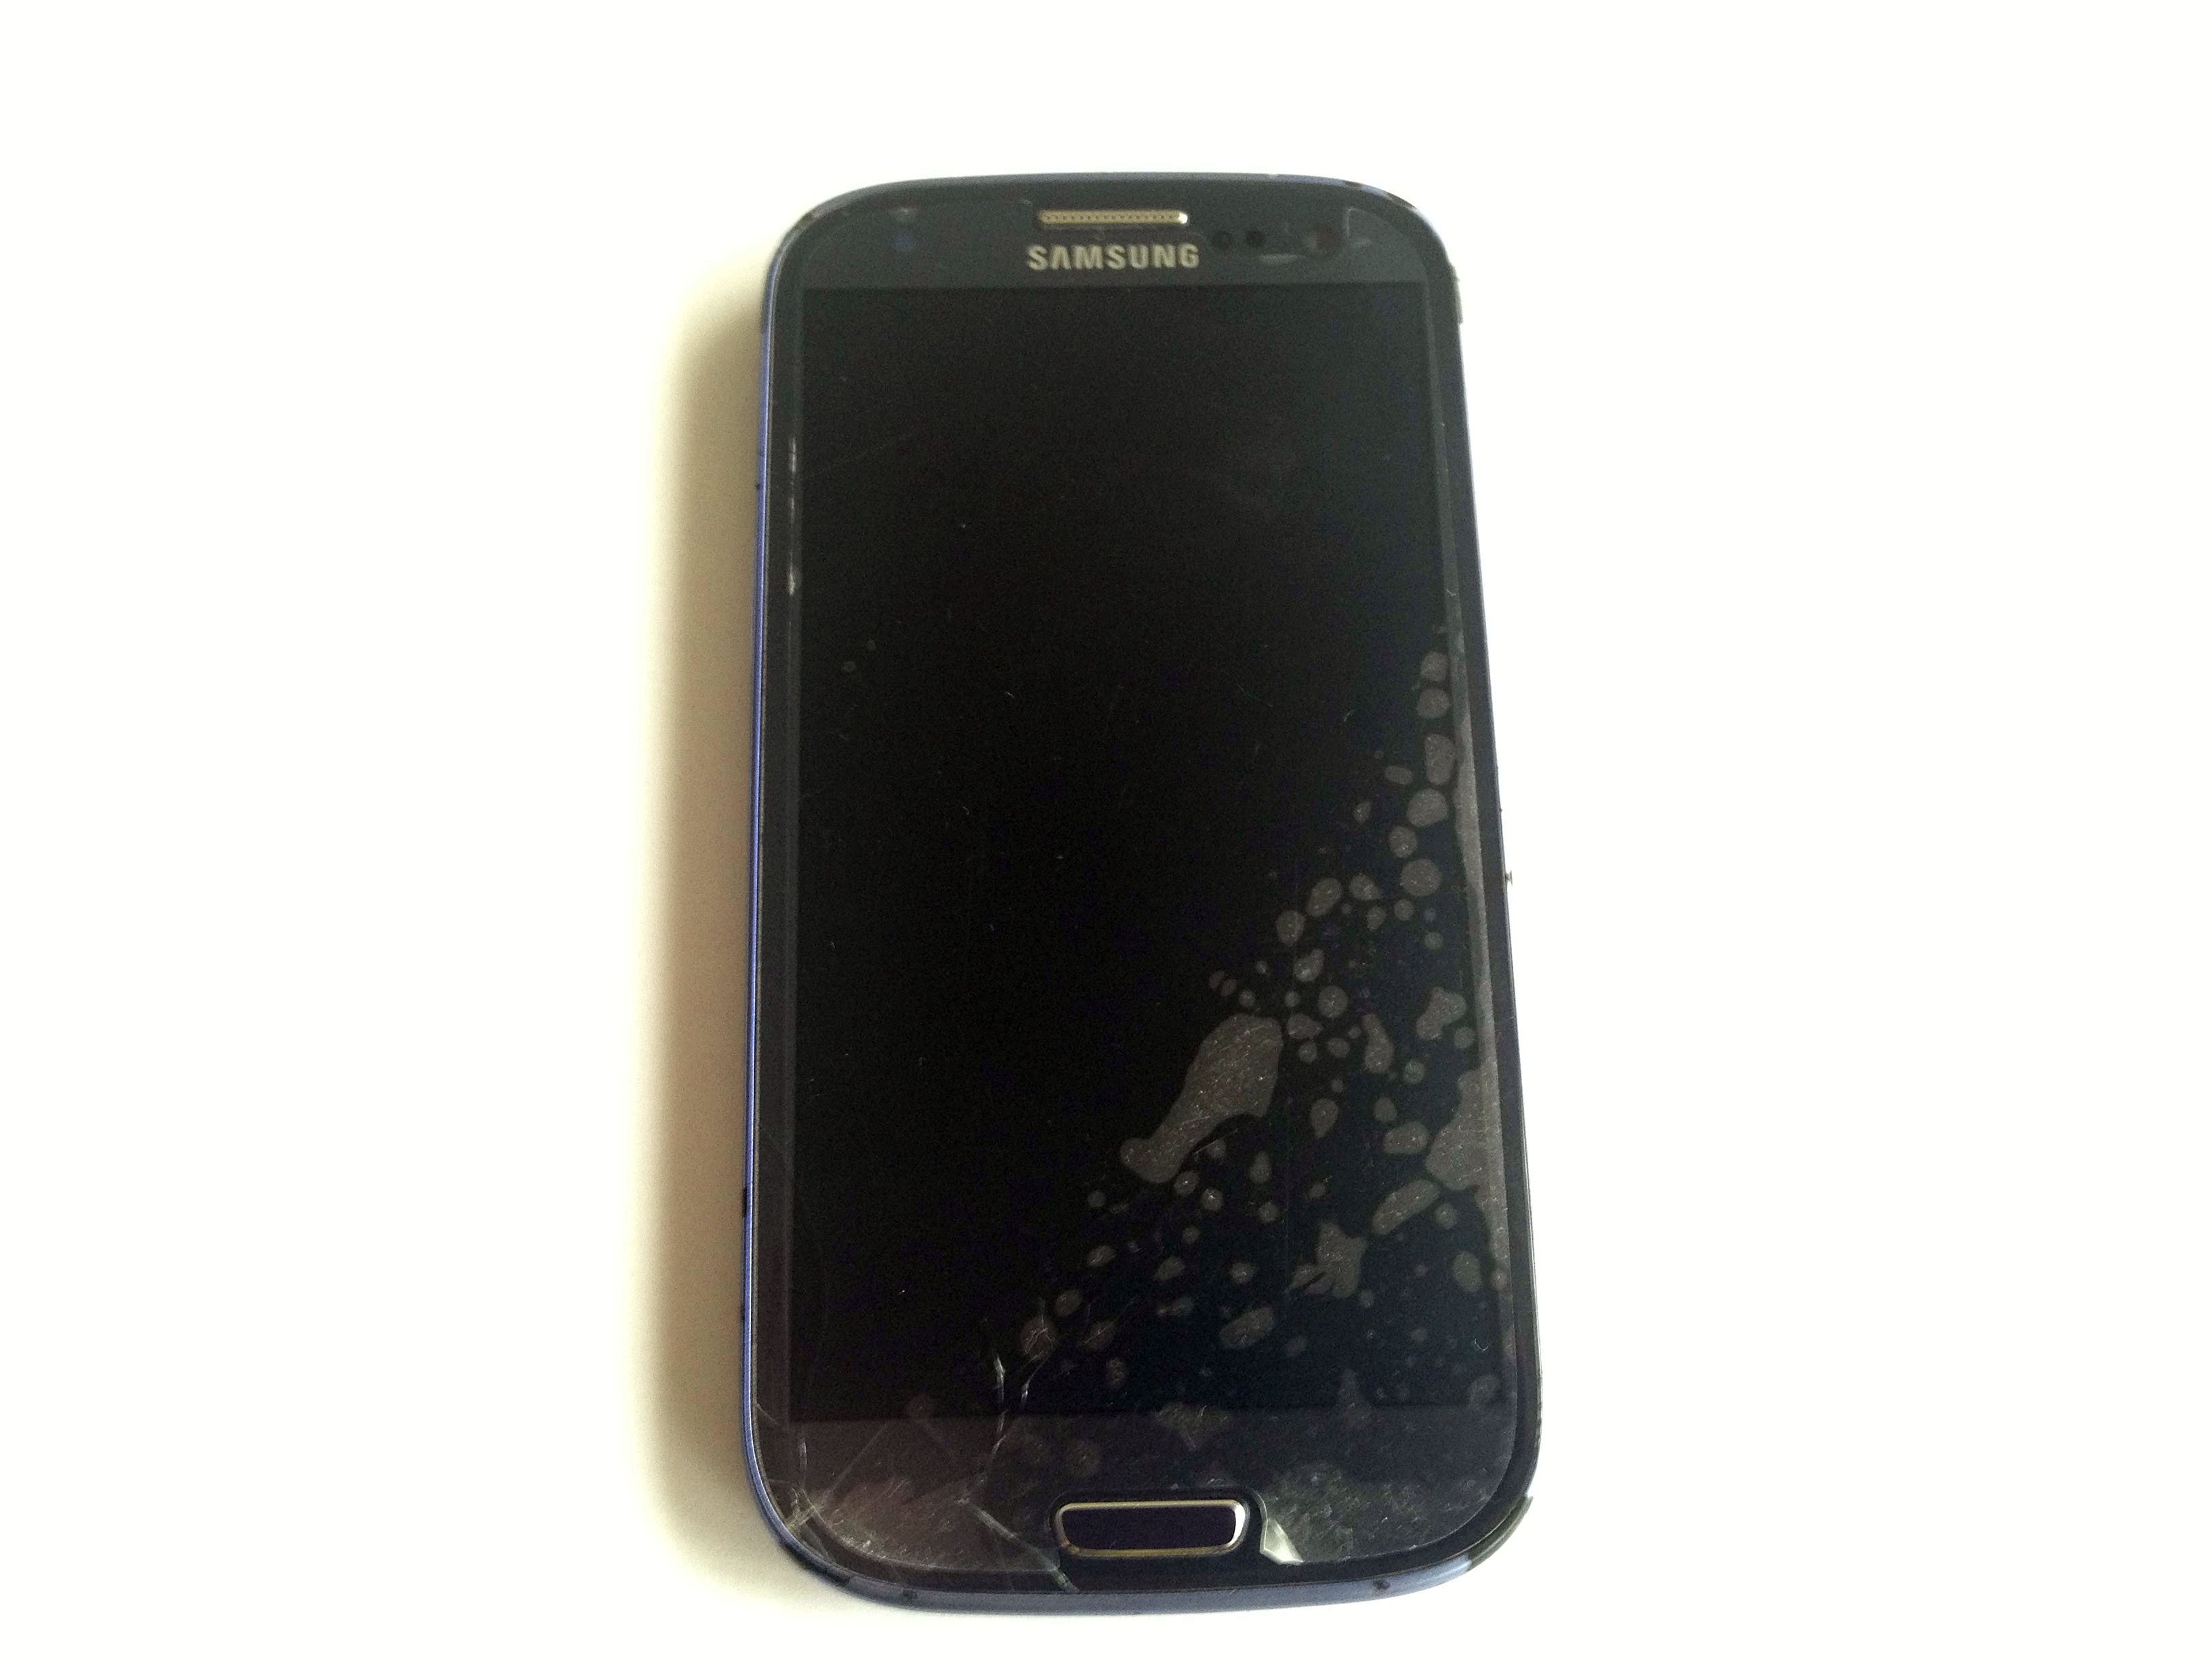 Samsung Galaxy S III Broken Front Glass Replacement - iFixit